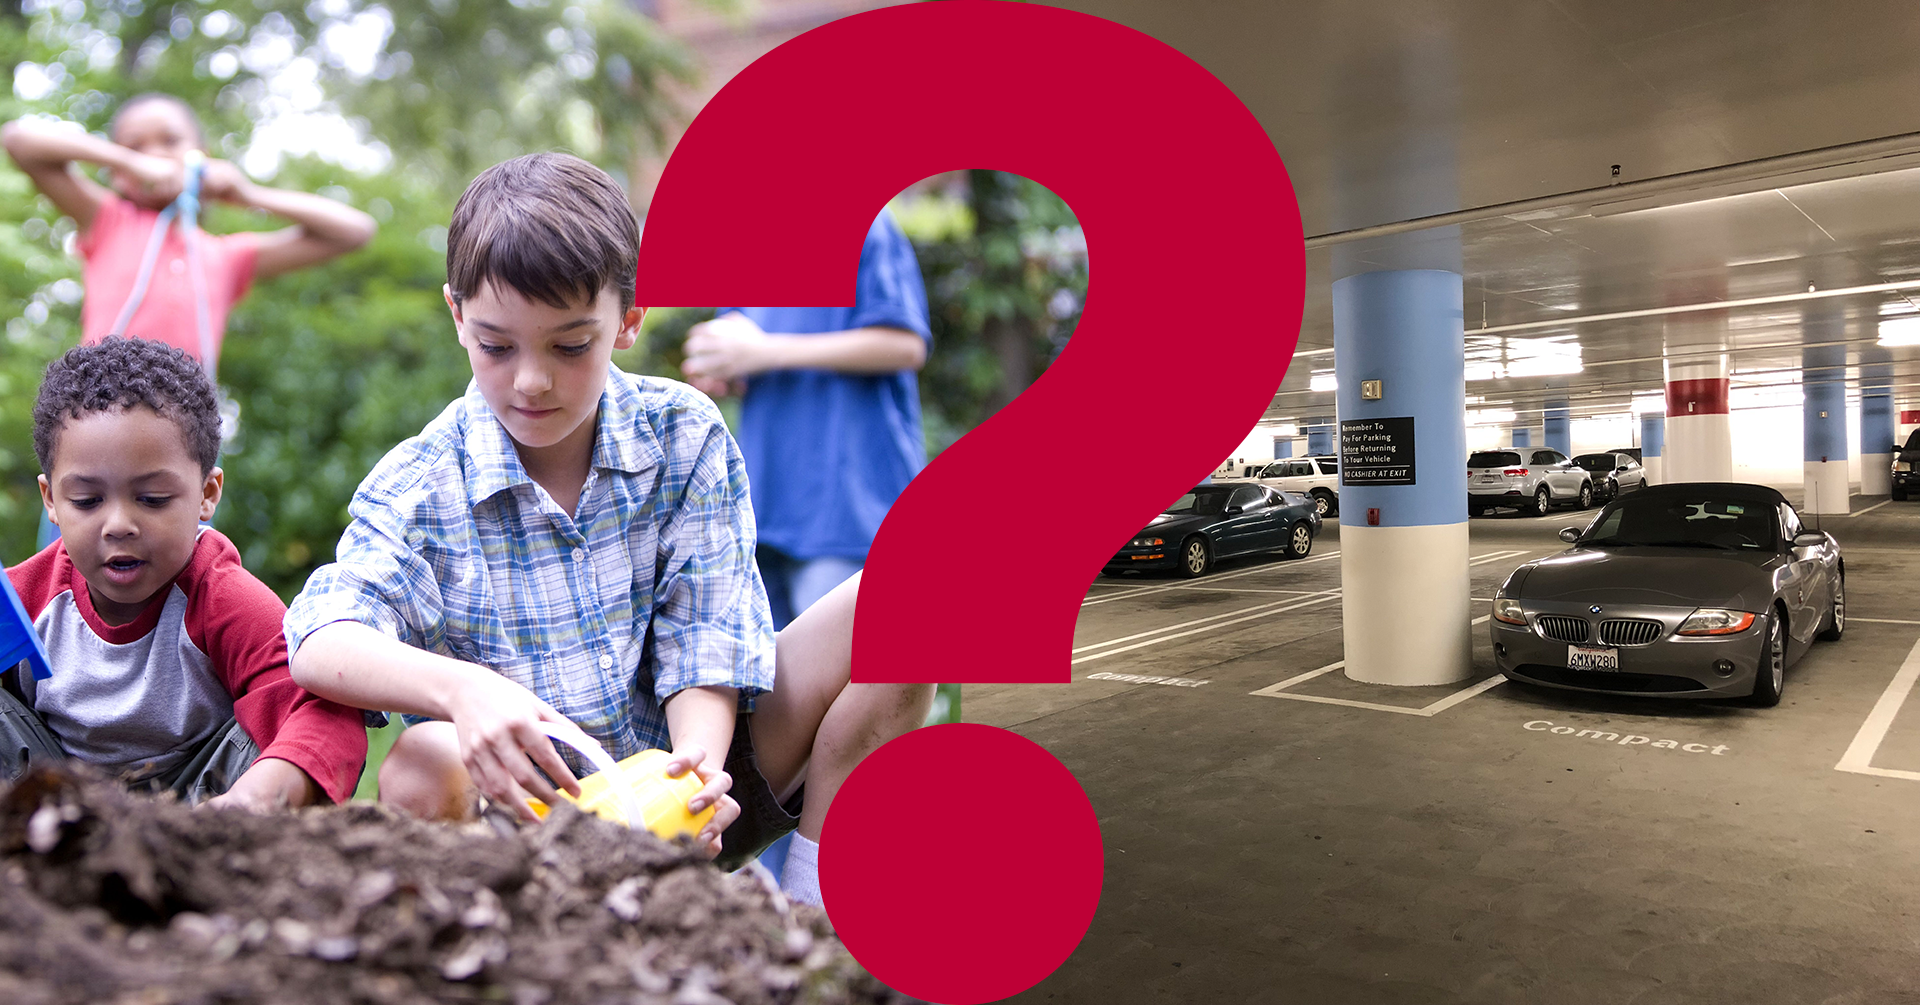 Children playing and a parking lot divided by a question mark.